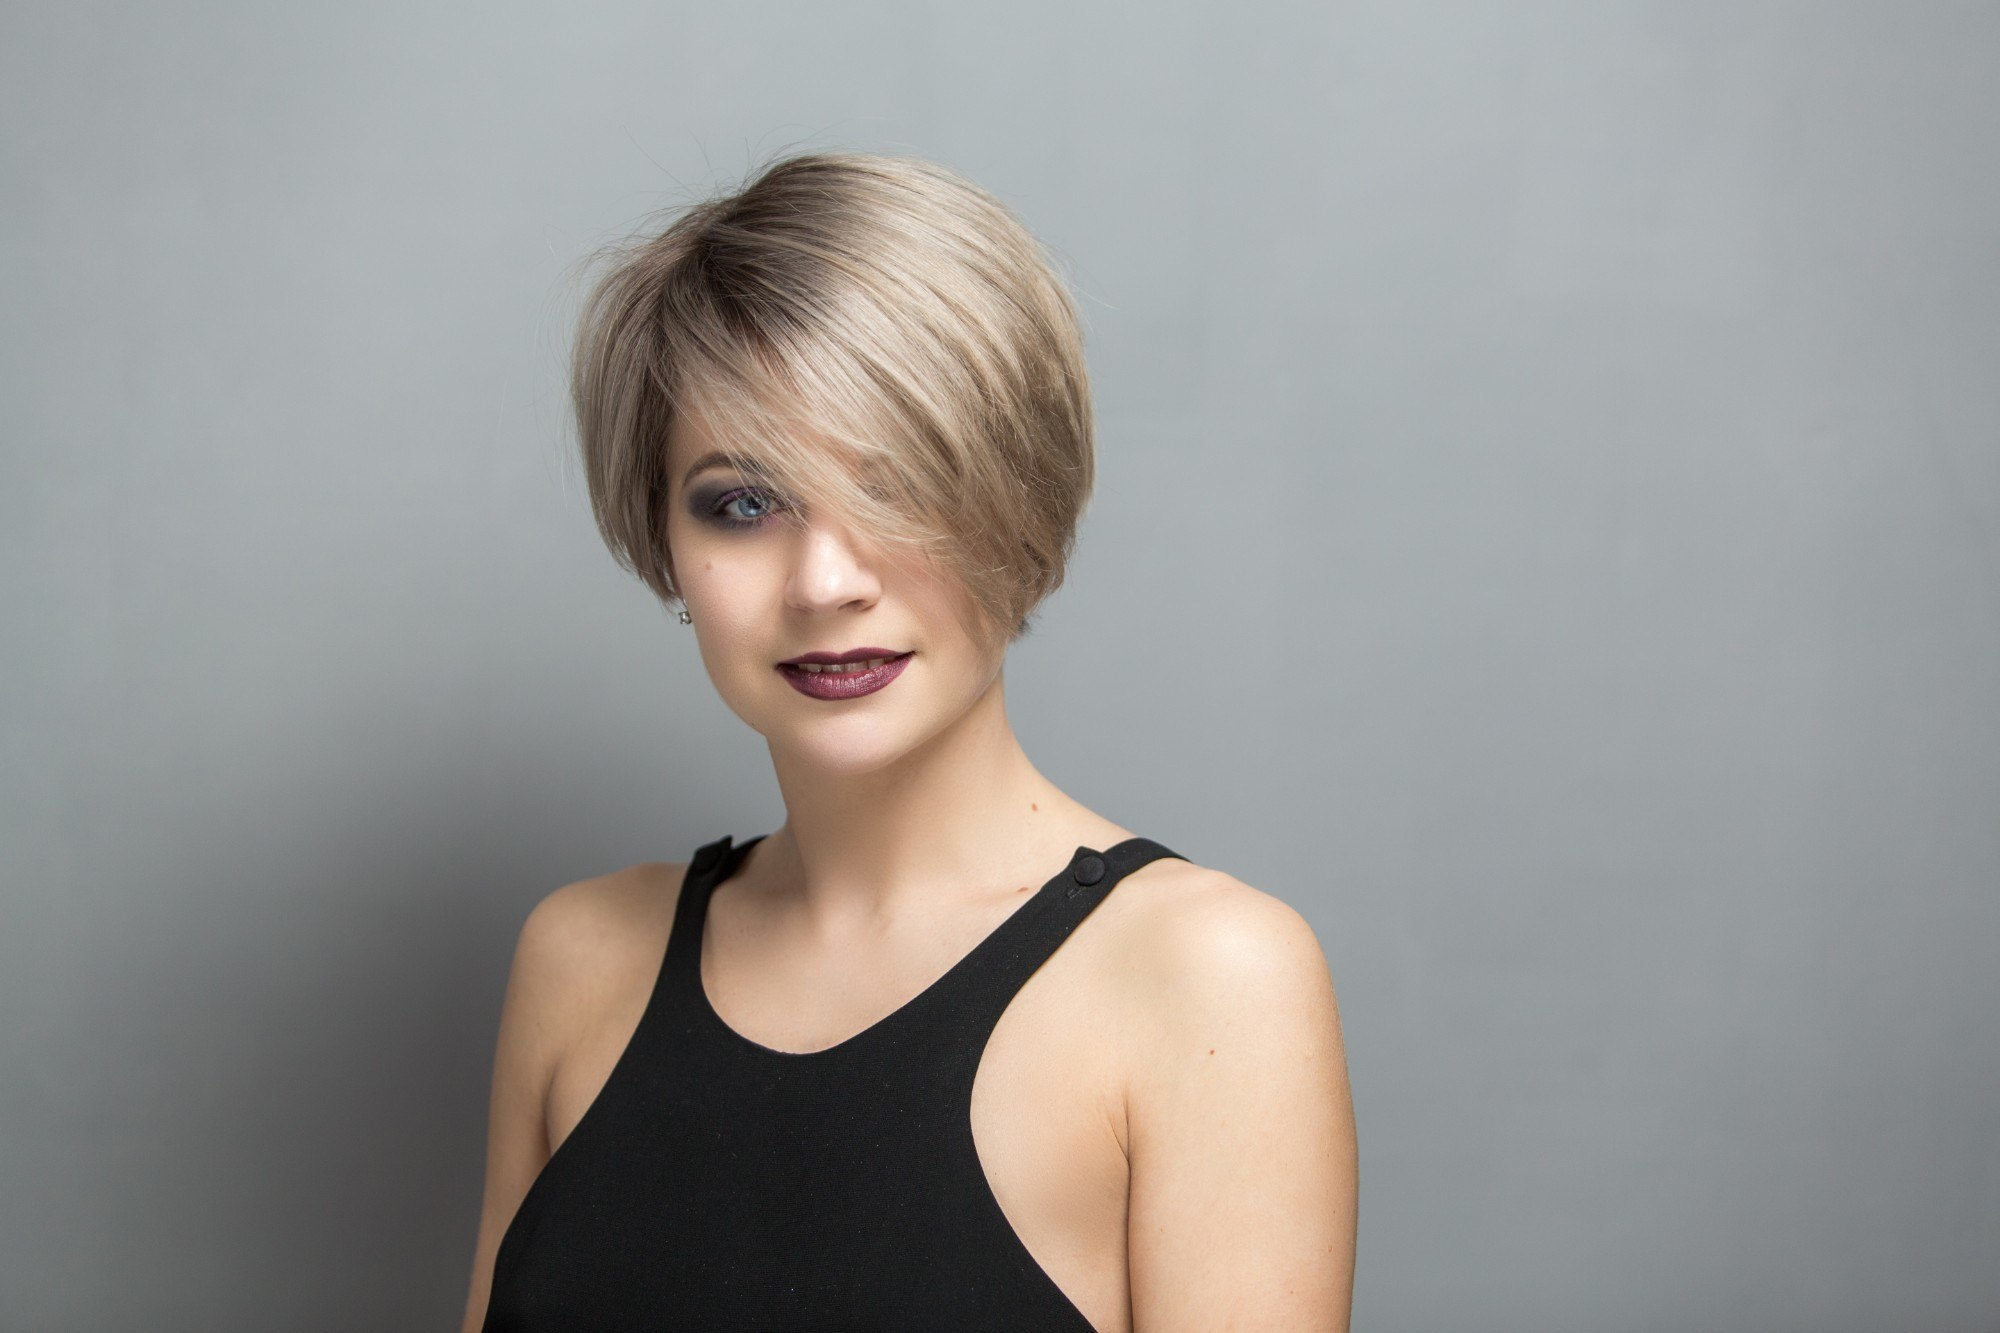 Layered Short Hair 20 Ways Pinays Can Rock This Hairstyle